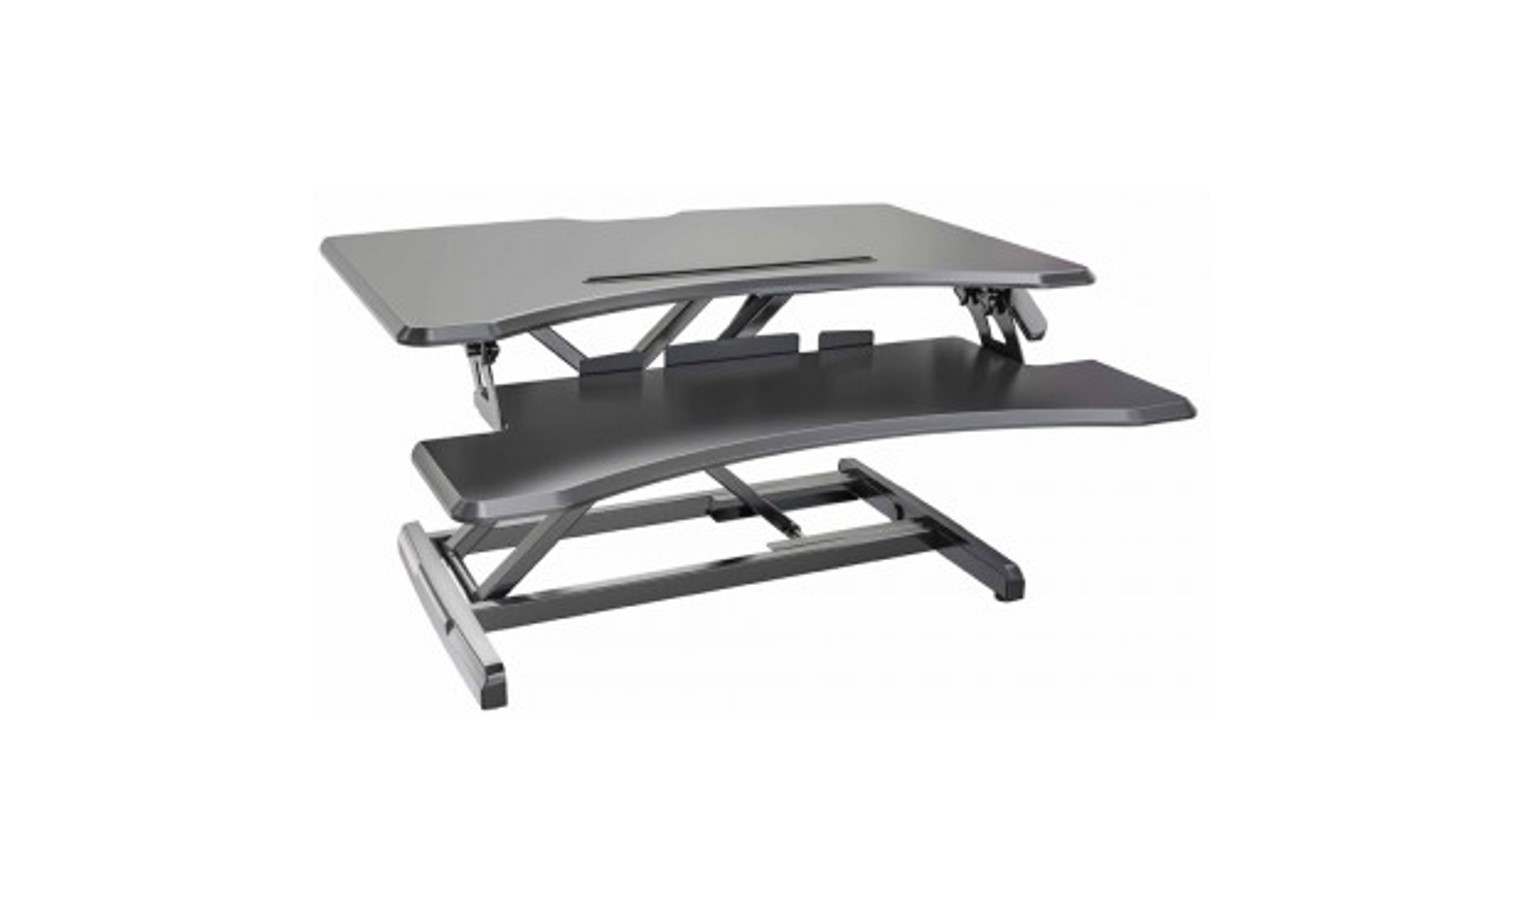 Gibbon VM-SD33 Mounts Sit Stand Desk